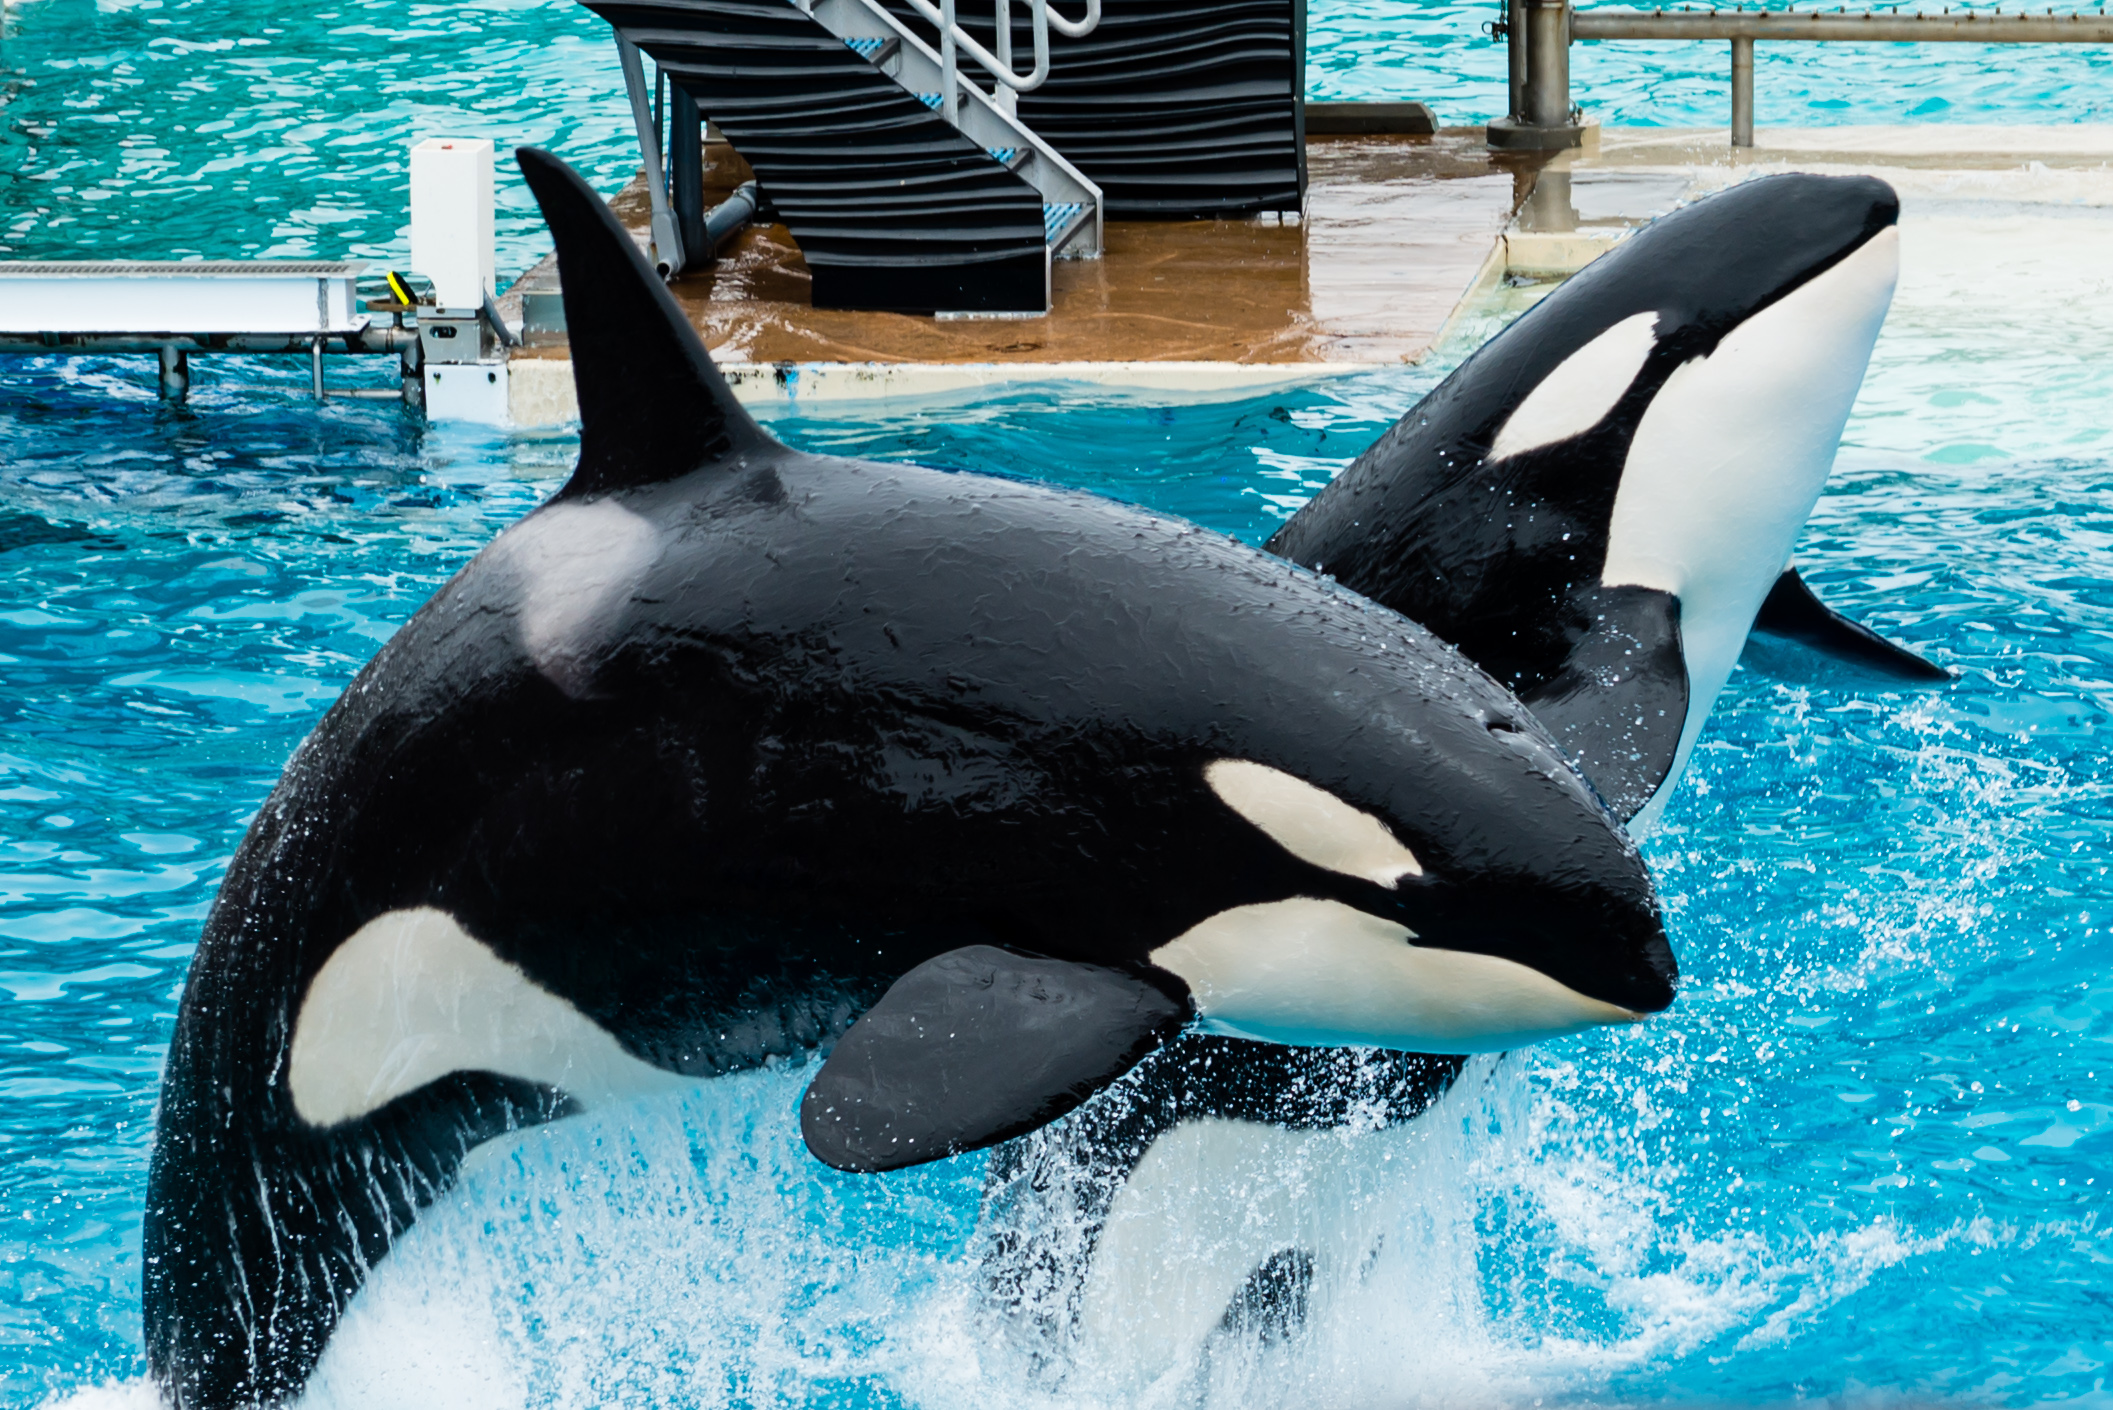 Seaworld images orcas leaping hd wallpaper and background photos seaworld images orcas leaping hd wallpaper and background photos thecheapjerseys Images